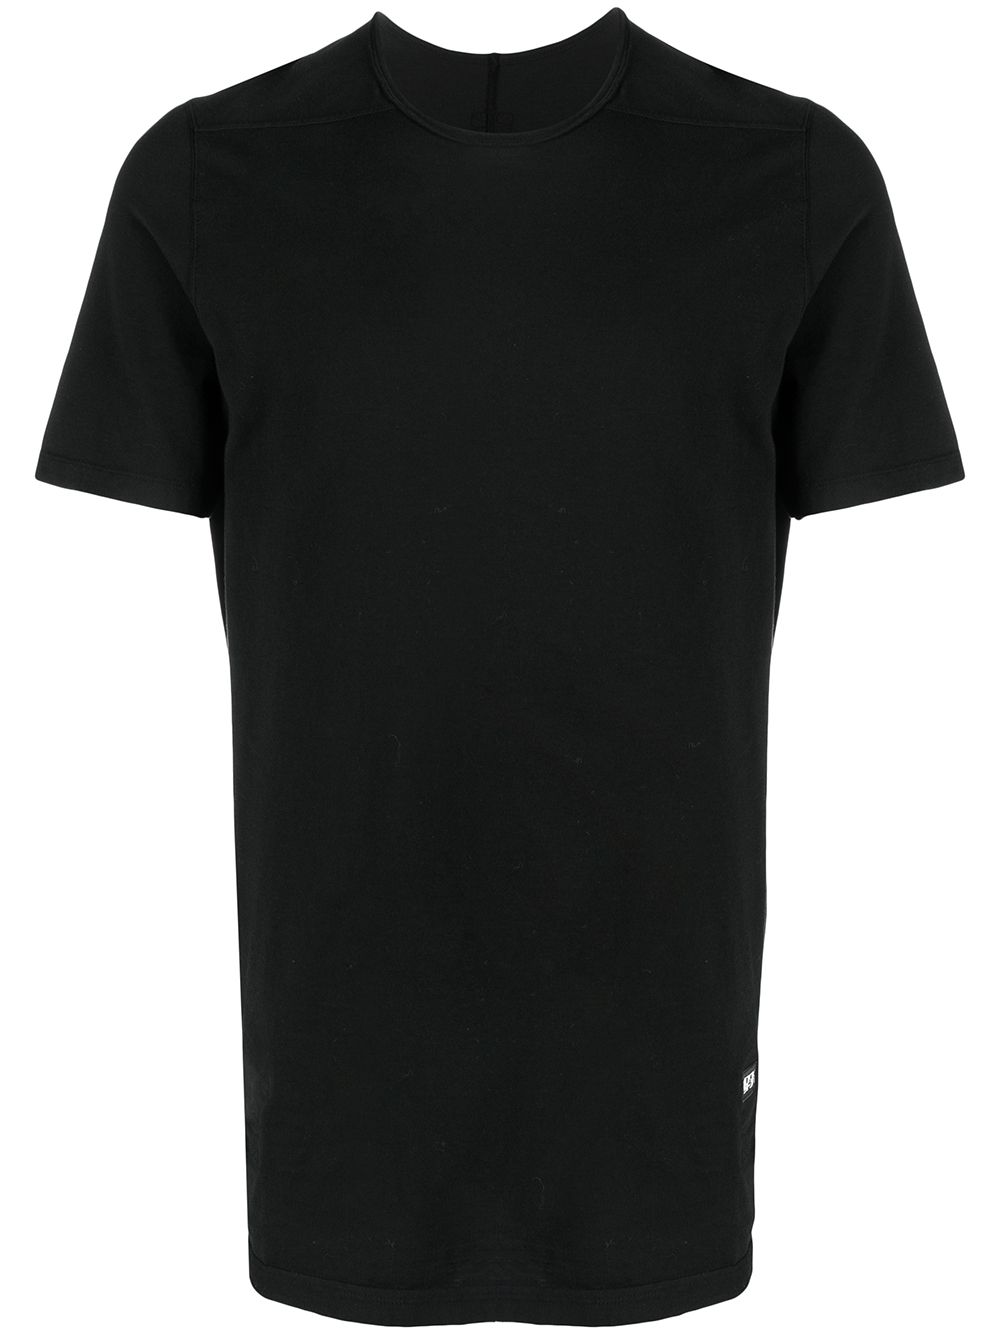 Rick Owens DRKSHDW Level T-Shirt Black